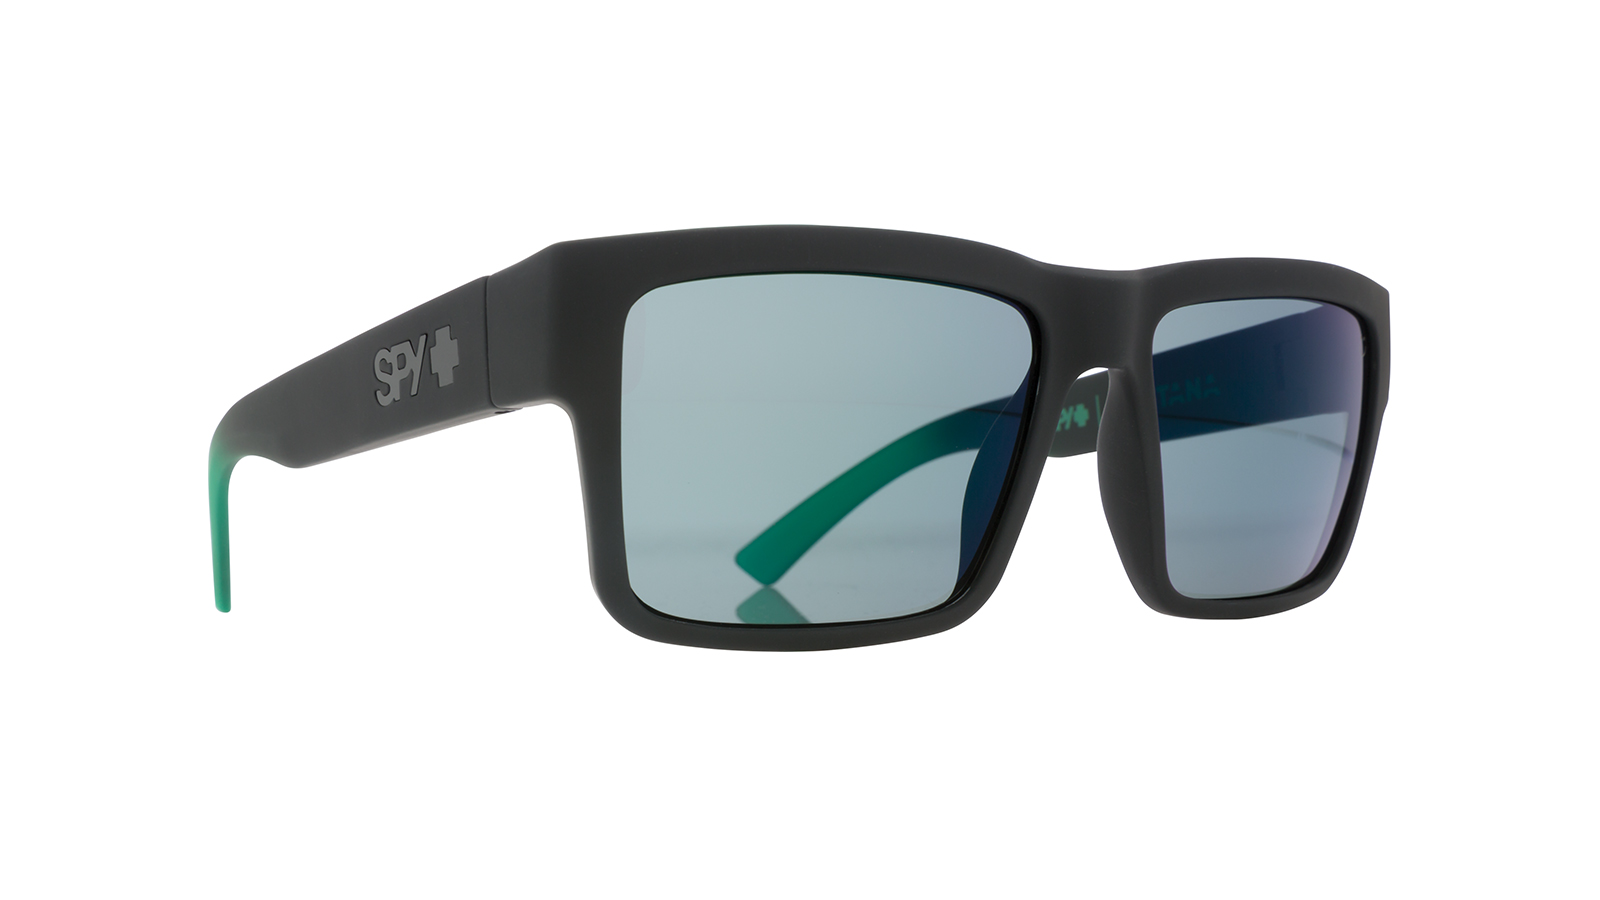 54a444a33c414 SPY MONTANA SOFTMATTEBLACKwGREENFADE HAPPYGRAYGREENwGREENFLASH 673407843695-01